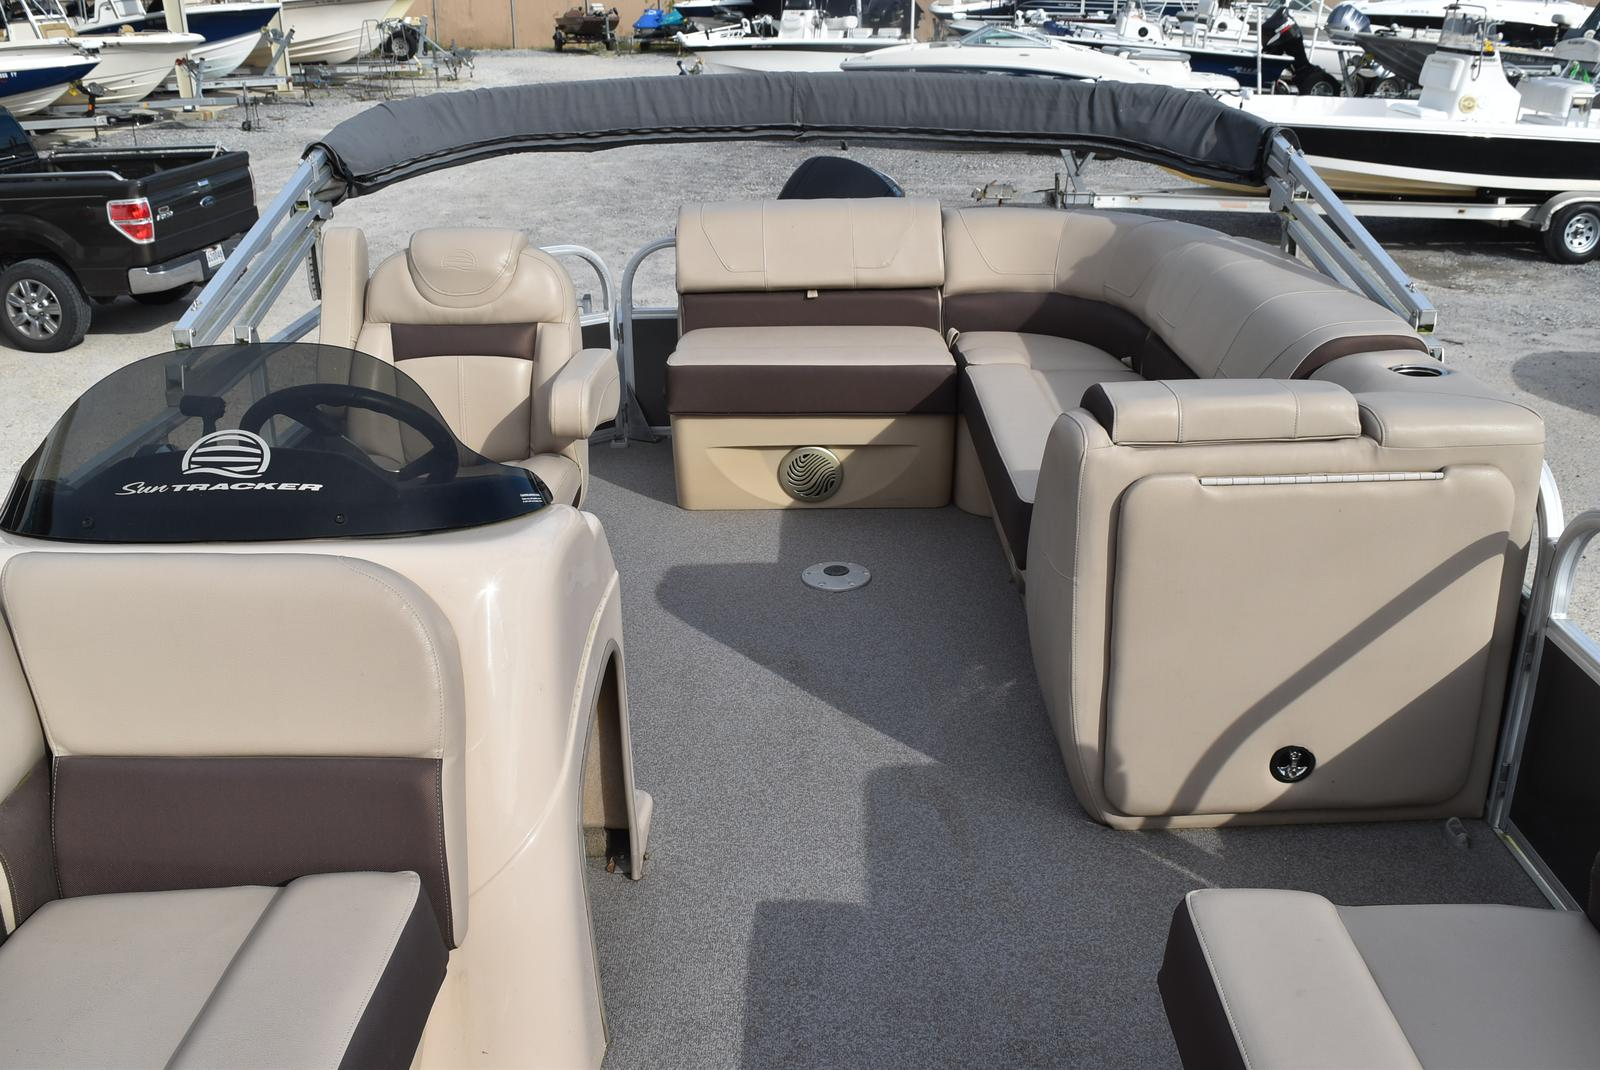 2018 Sun Tracker boat for sale, model of the boat is Party Barge 20 DLX, 90CT & Image # 14 of 14